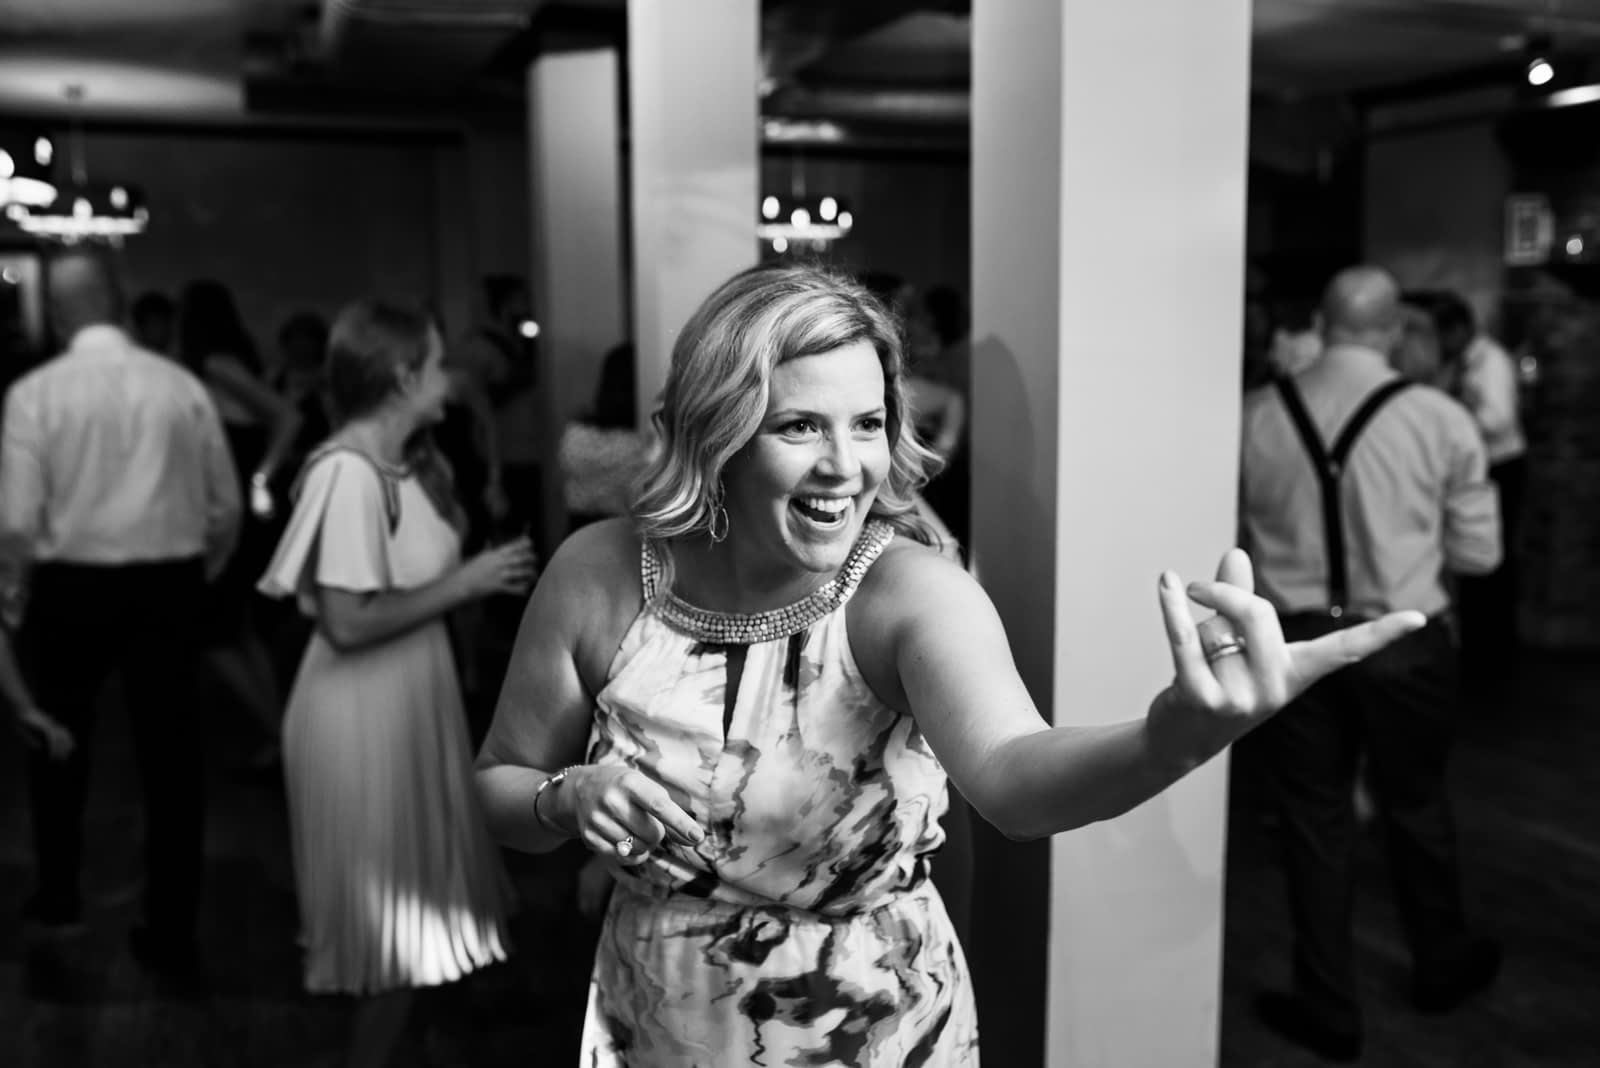 Wedding guests gesturing to friend to come and dance with her